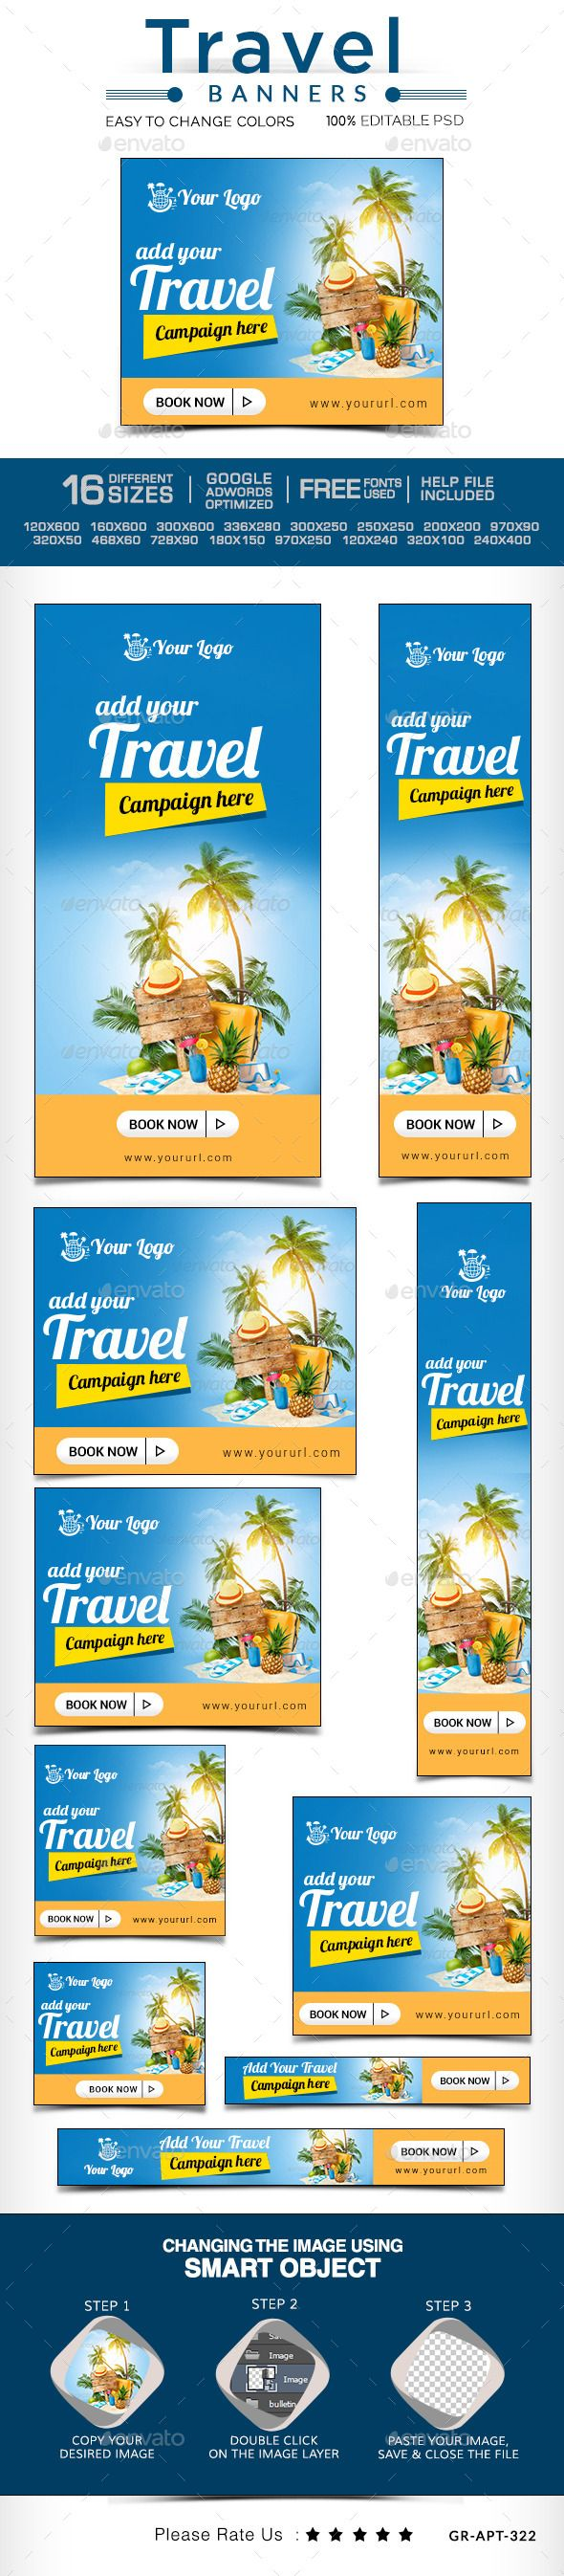 Travel Banners | Download: http://graphicriver.net/item/travel-banners/10247910?ref=ksioks